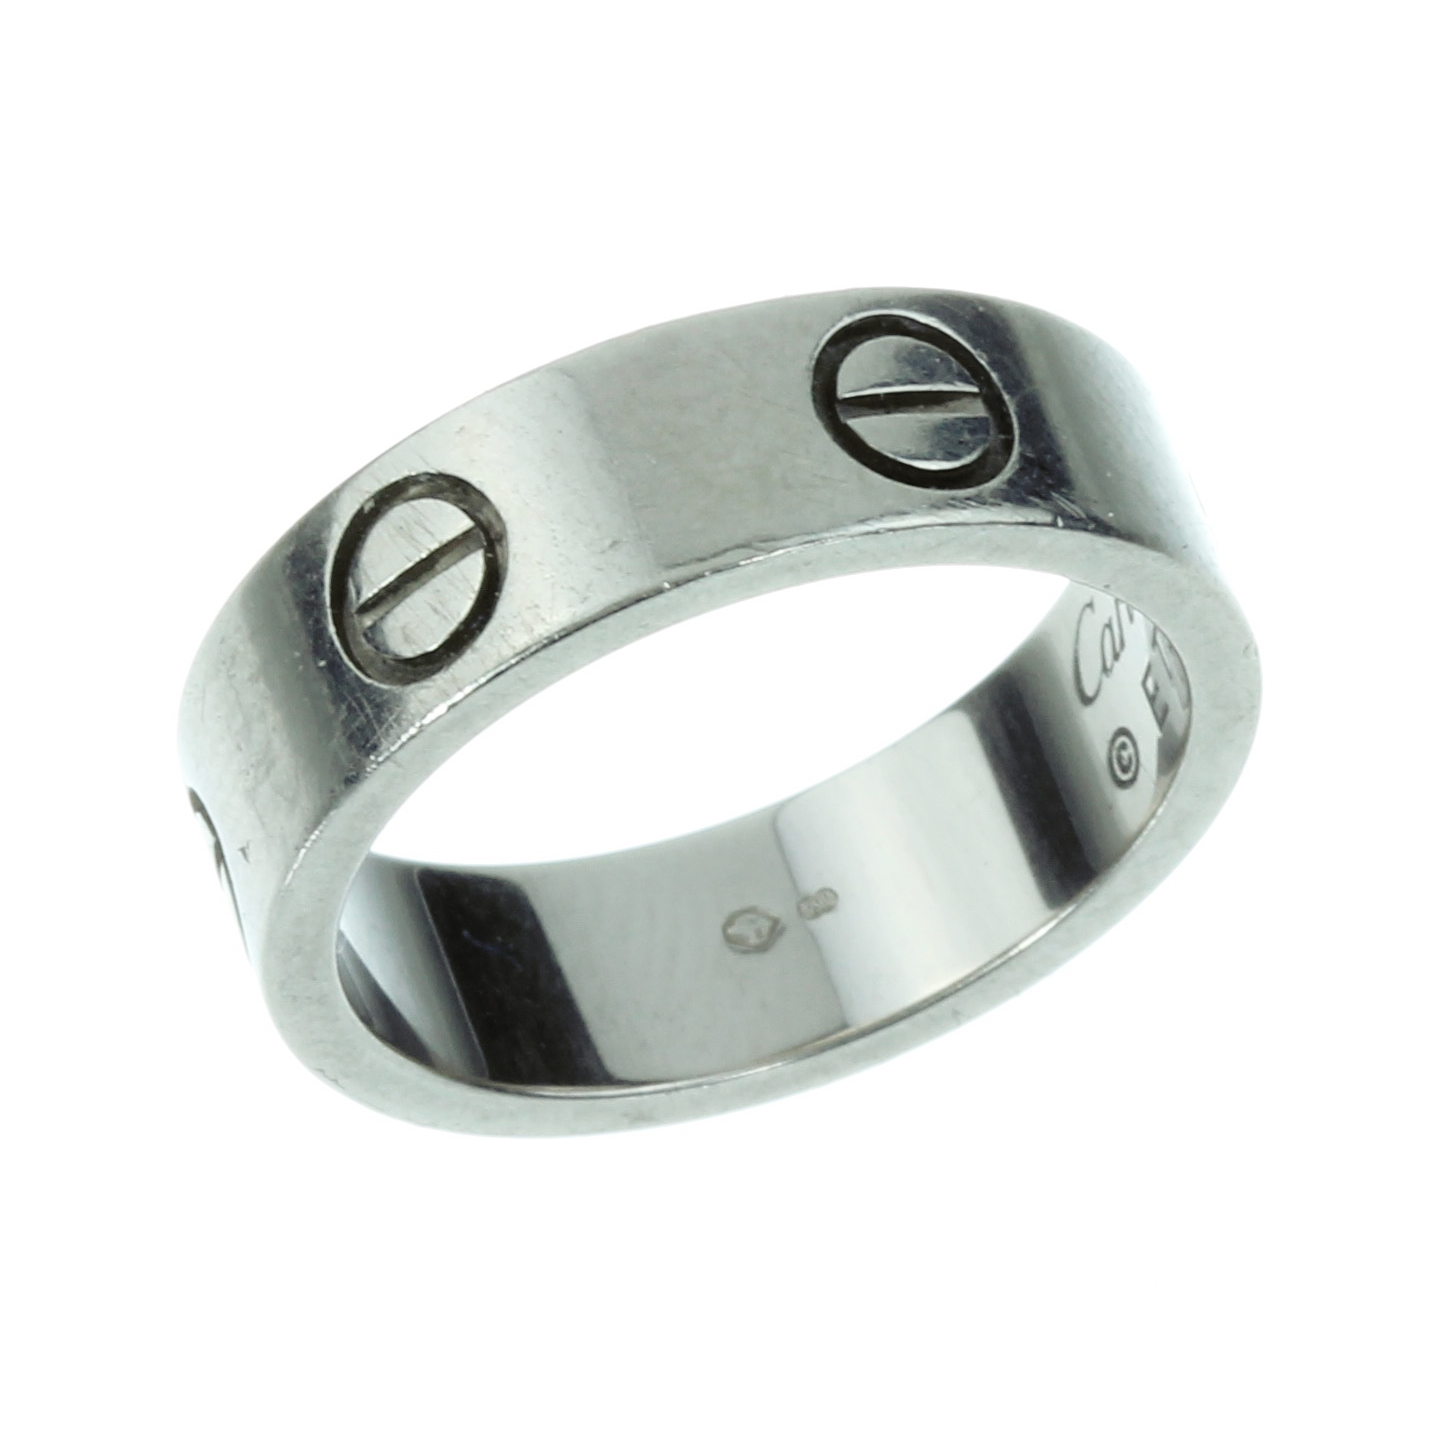 Los 3 - A LOVE RING, CARTIER in 18ct white gold punctuated with screw head motifs, signed Cartier and